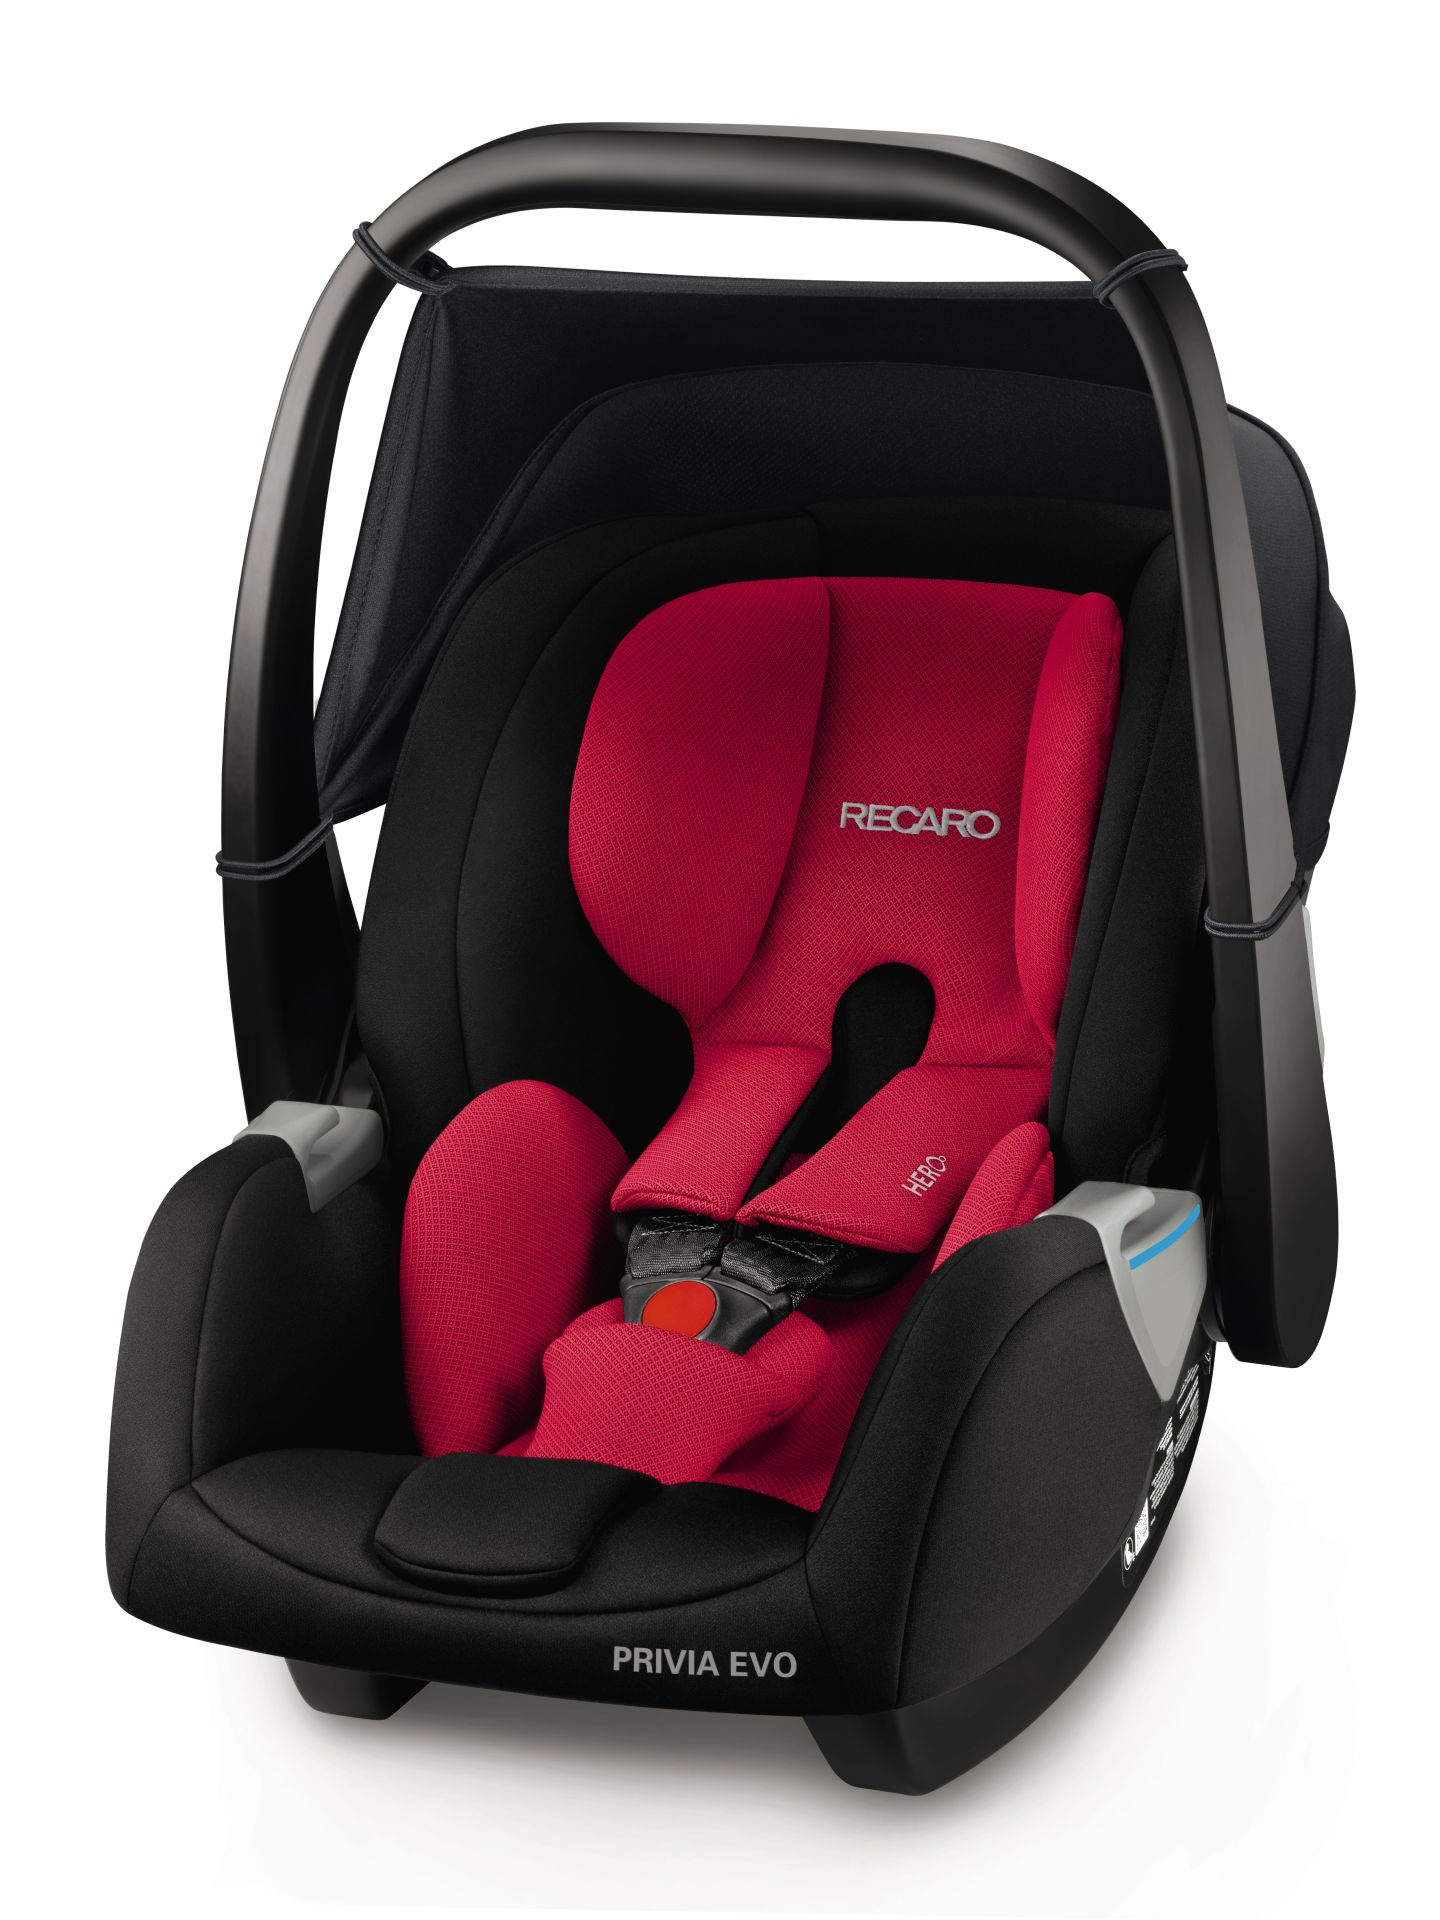 Recaro Infant Car Seat Privia Evo 2018 Racing Red - Buy at kidsroom